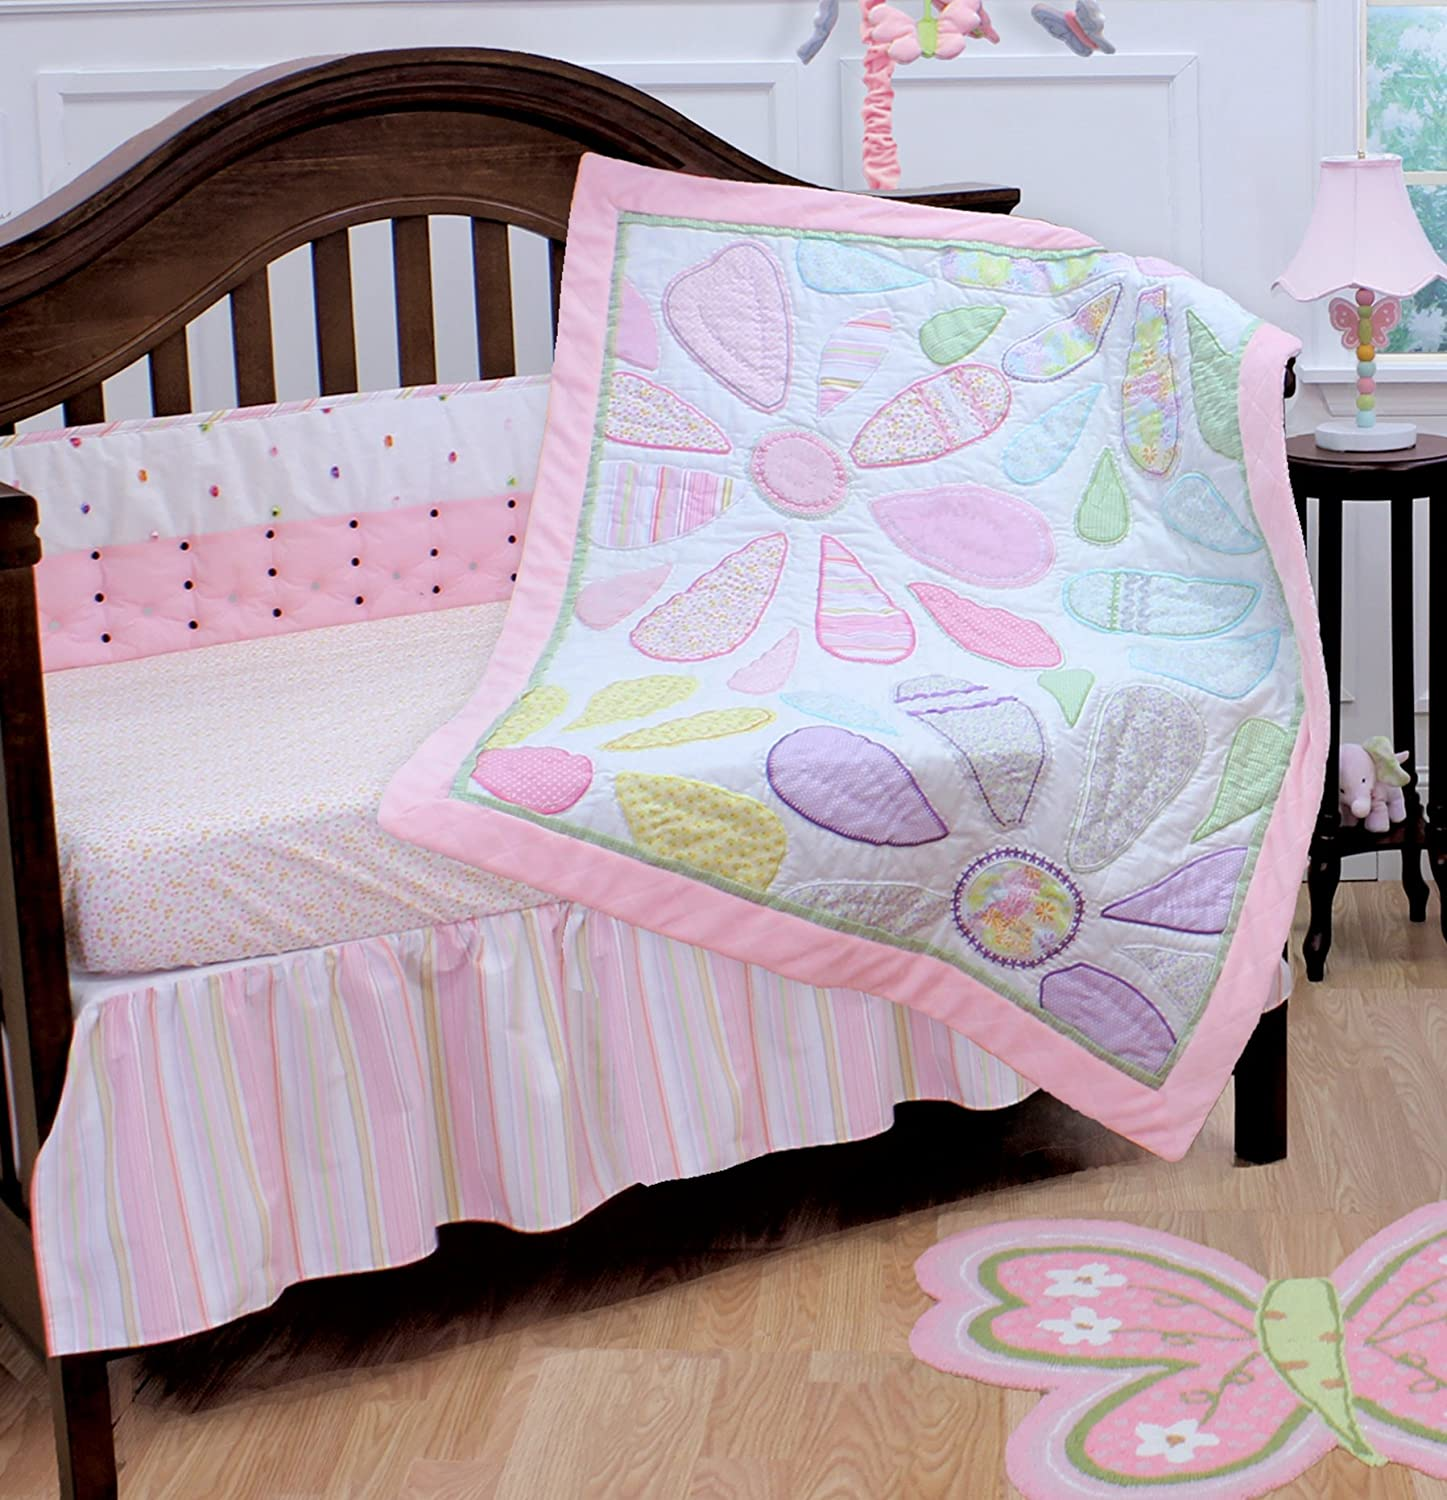 Nurture Imagination Crazy Daisy Baby Bedding